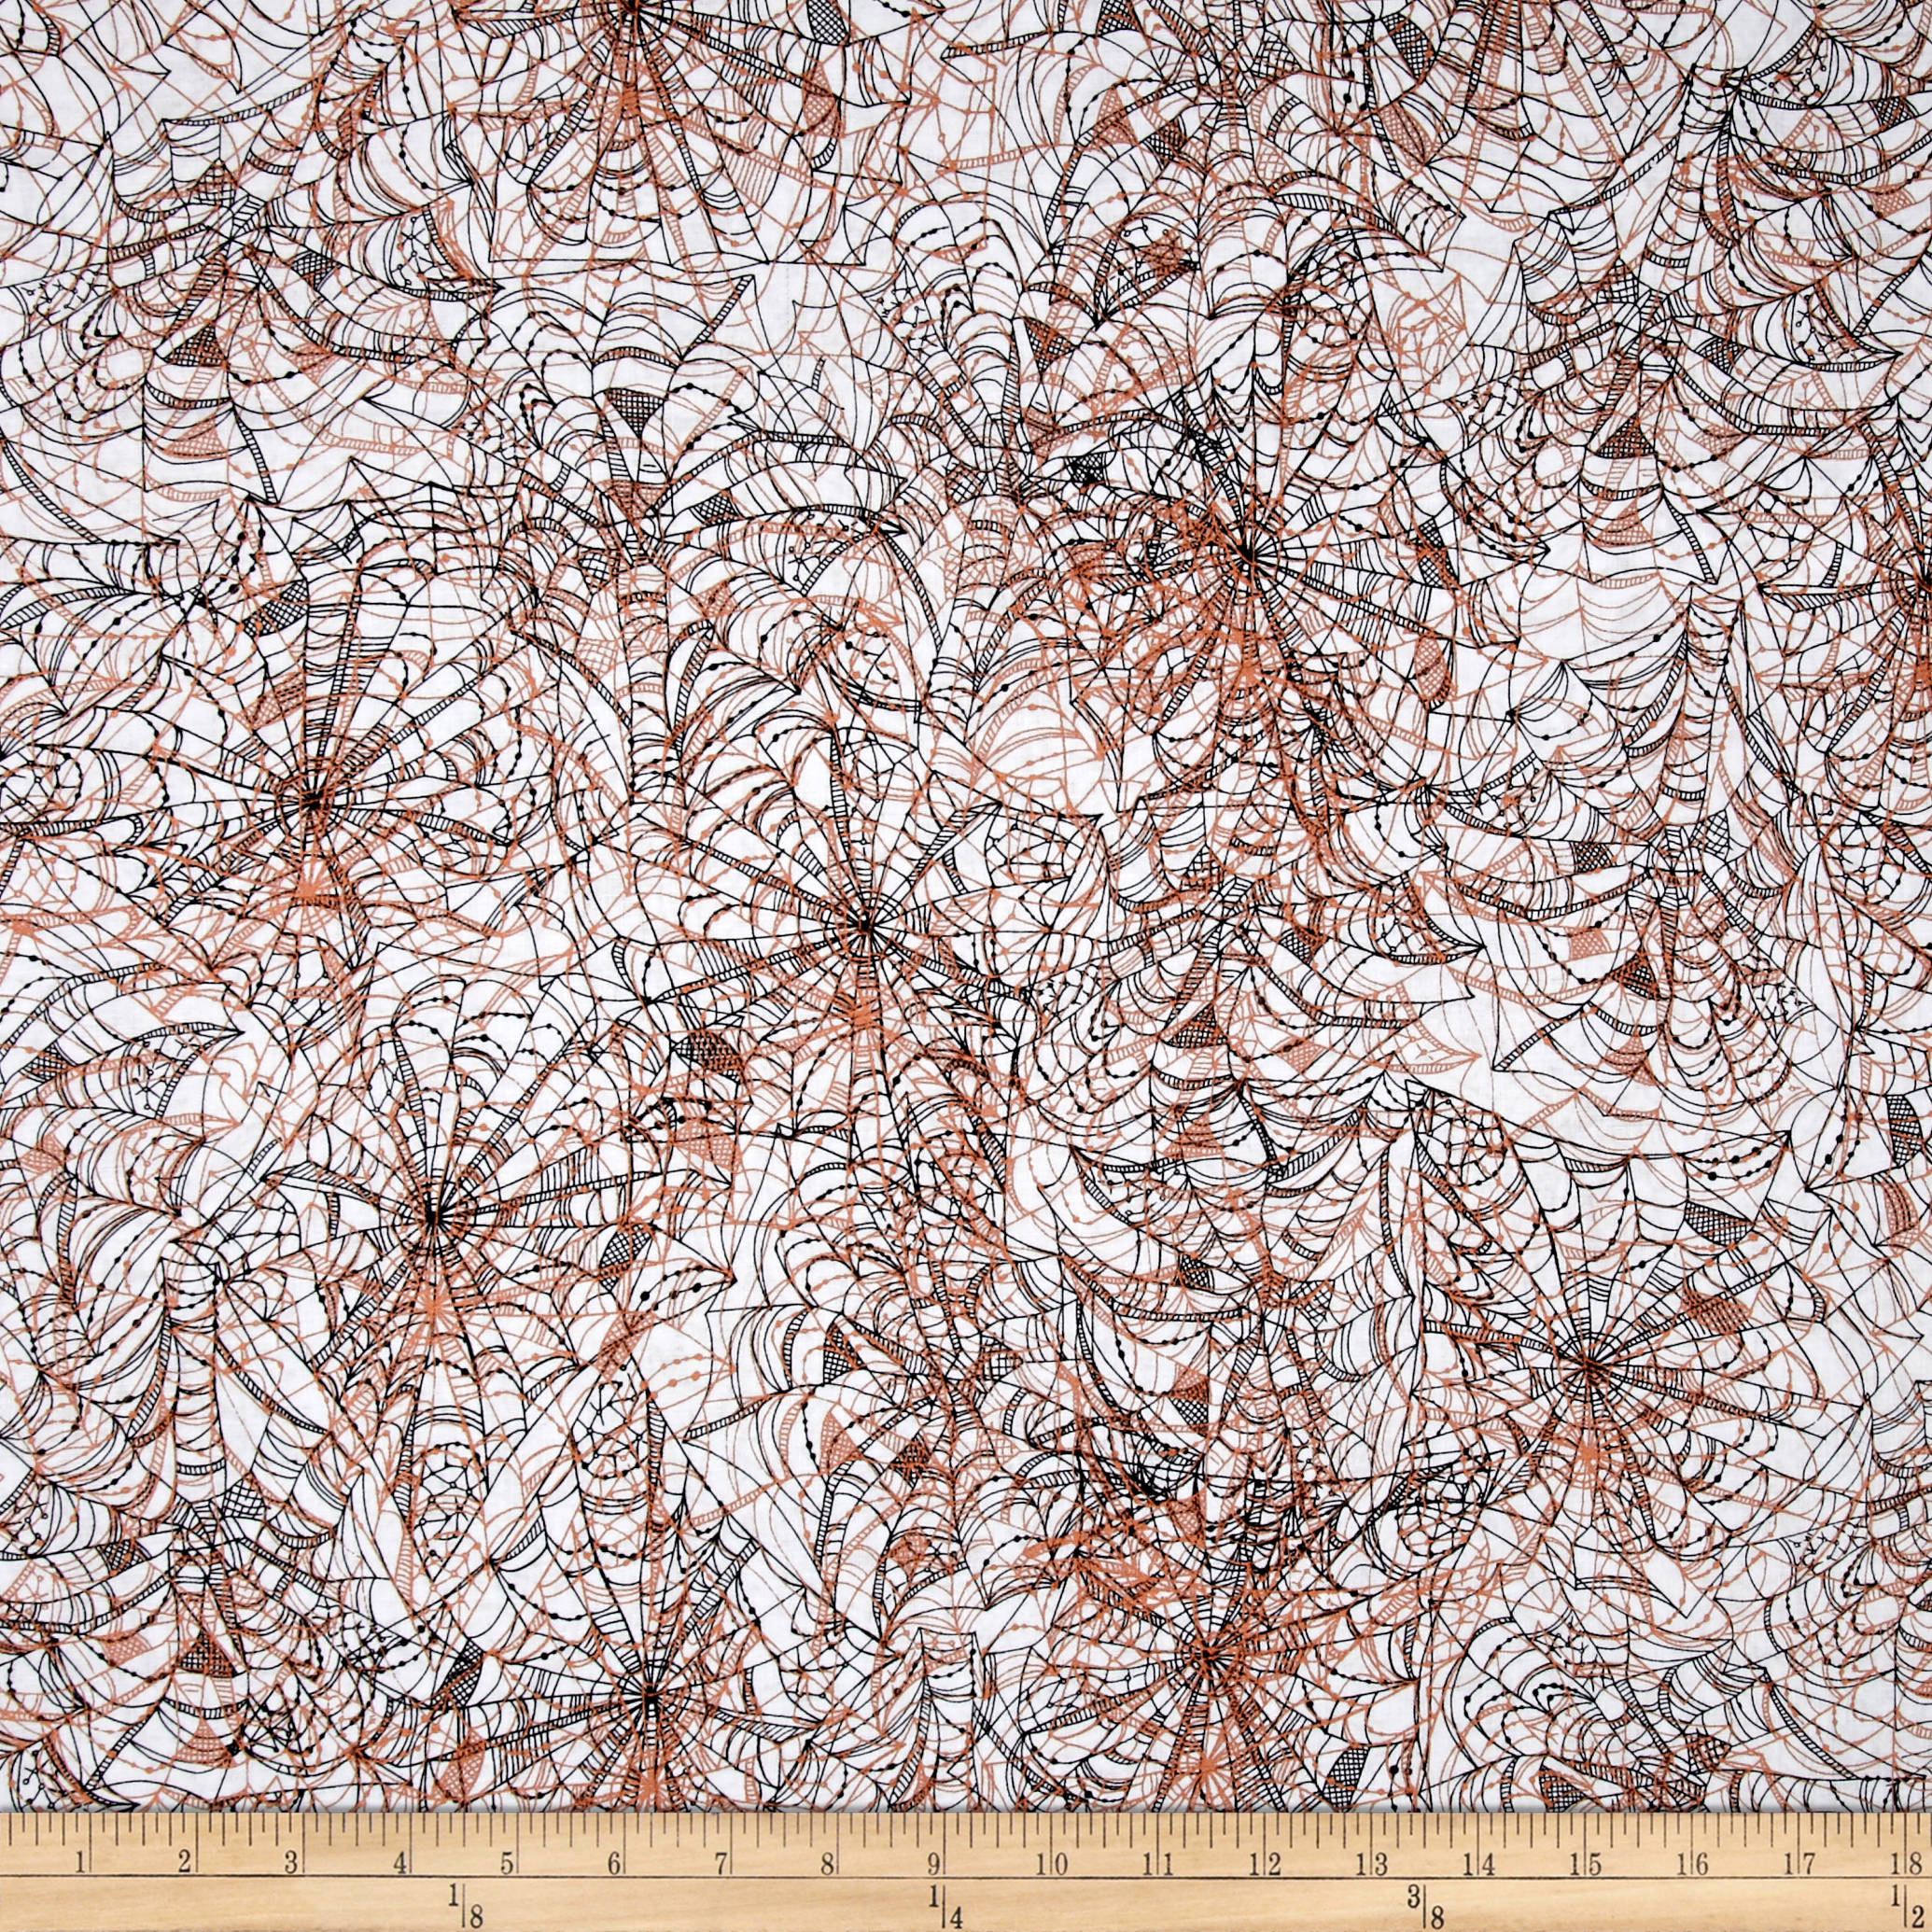 Potions & Spells Metallic Spiderwebs White Fabric by Quilting Treasures in USA